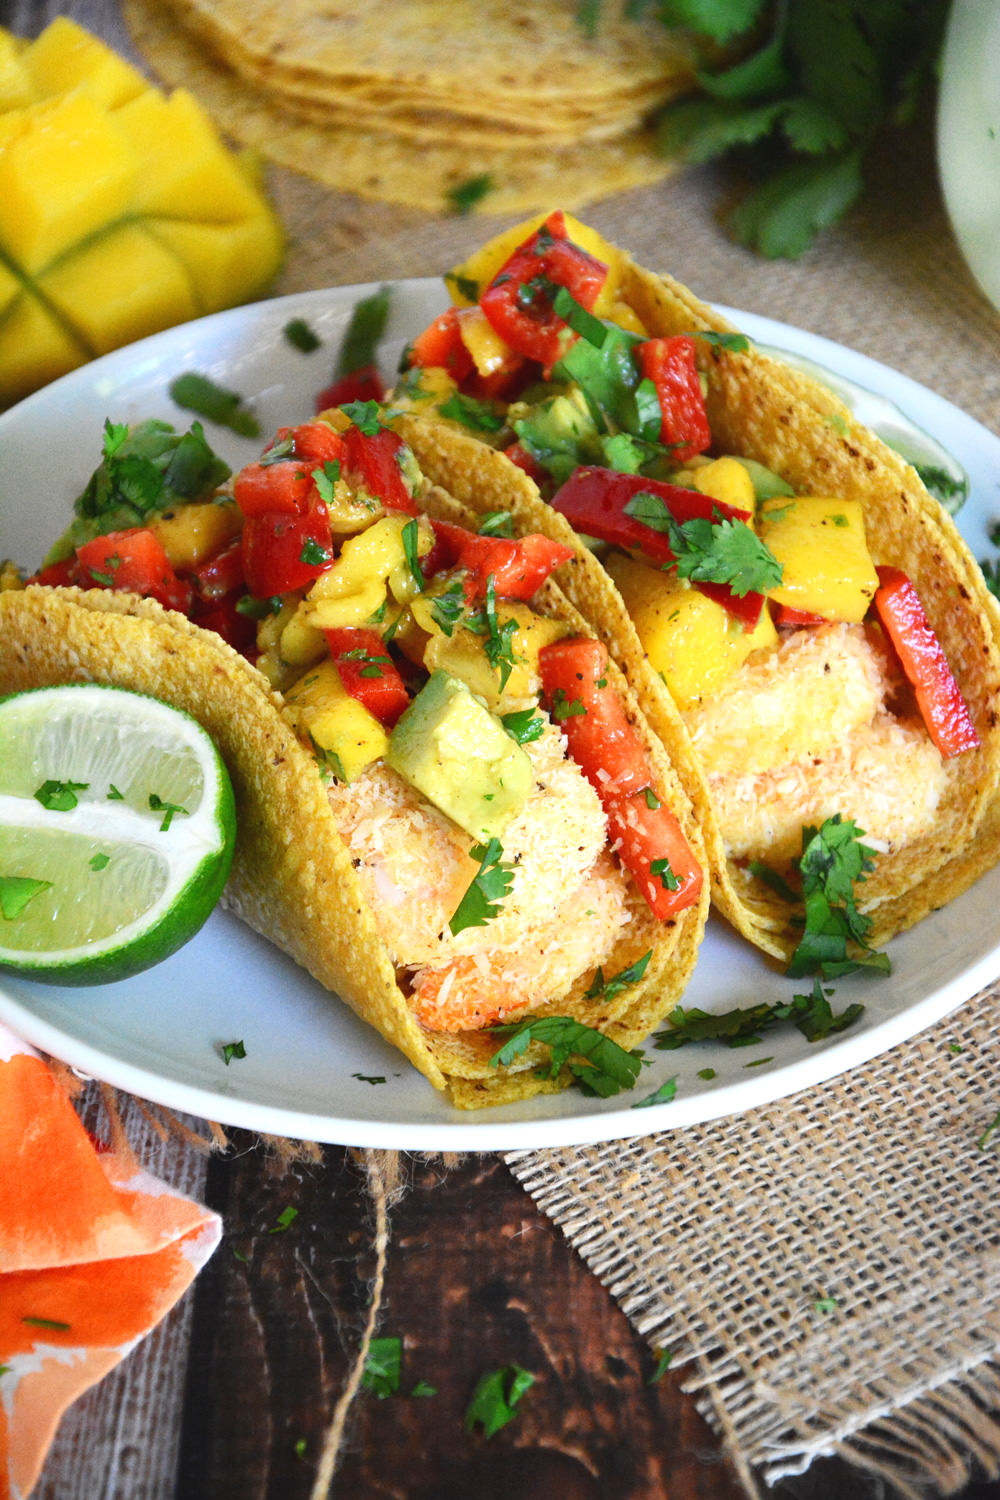 Healthy and Quick Shrimp Tacos sweetened with coconut and topped with a sweet and spicy salsa of mango, red pepper and avocado!